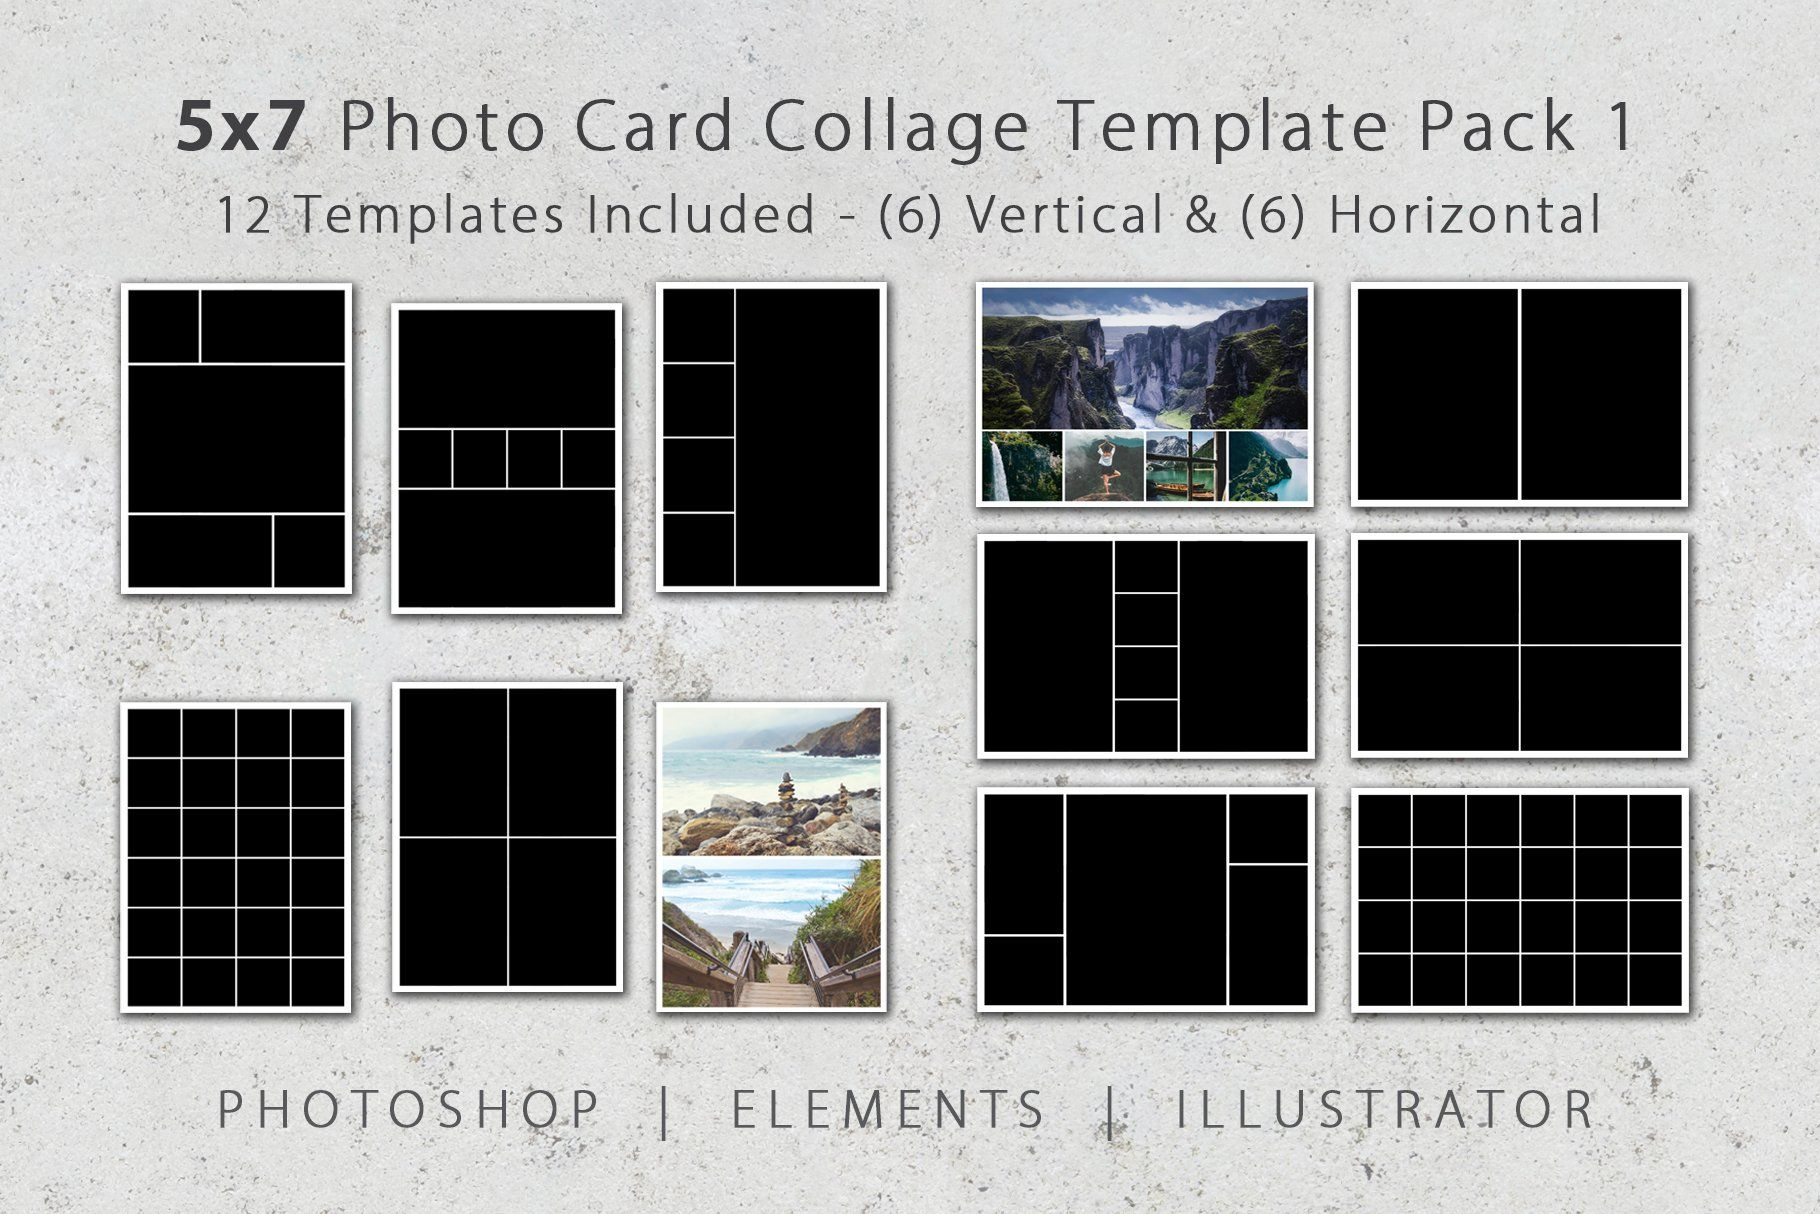 5x7 Photo Card Collage Template Pack Collage Template Photo Collage Template Photo Card Template